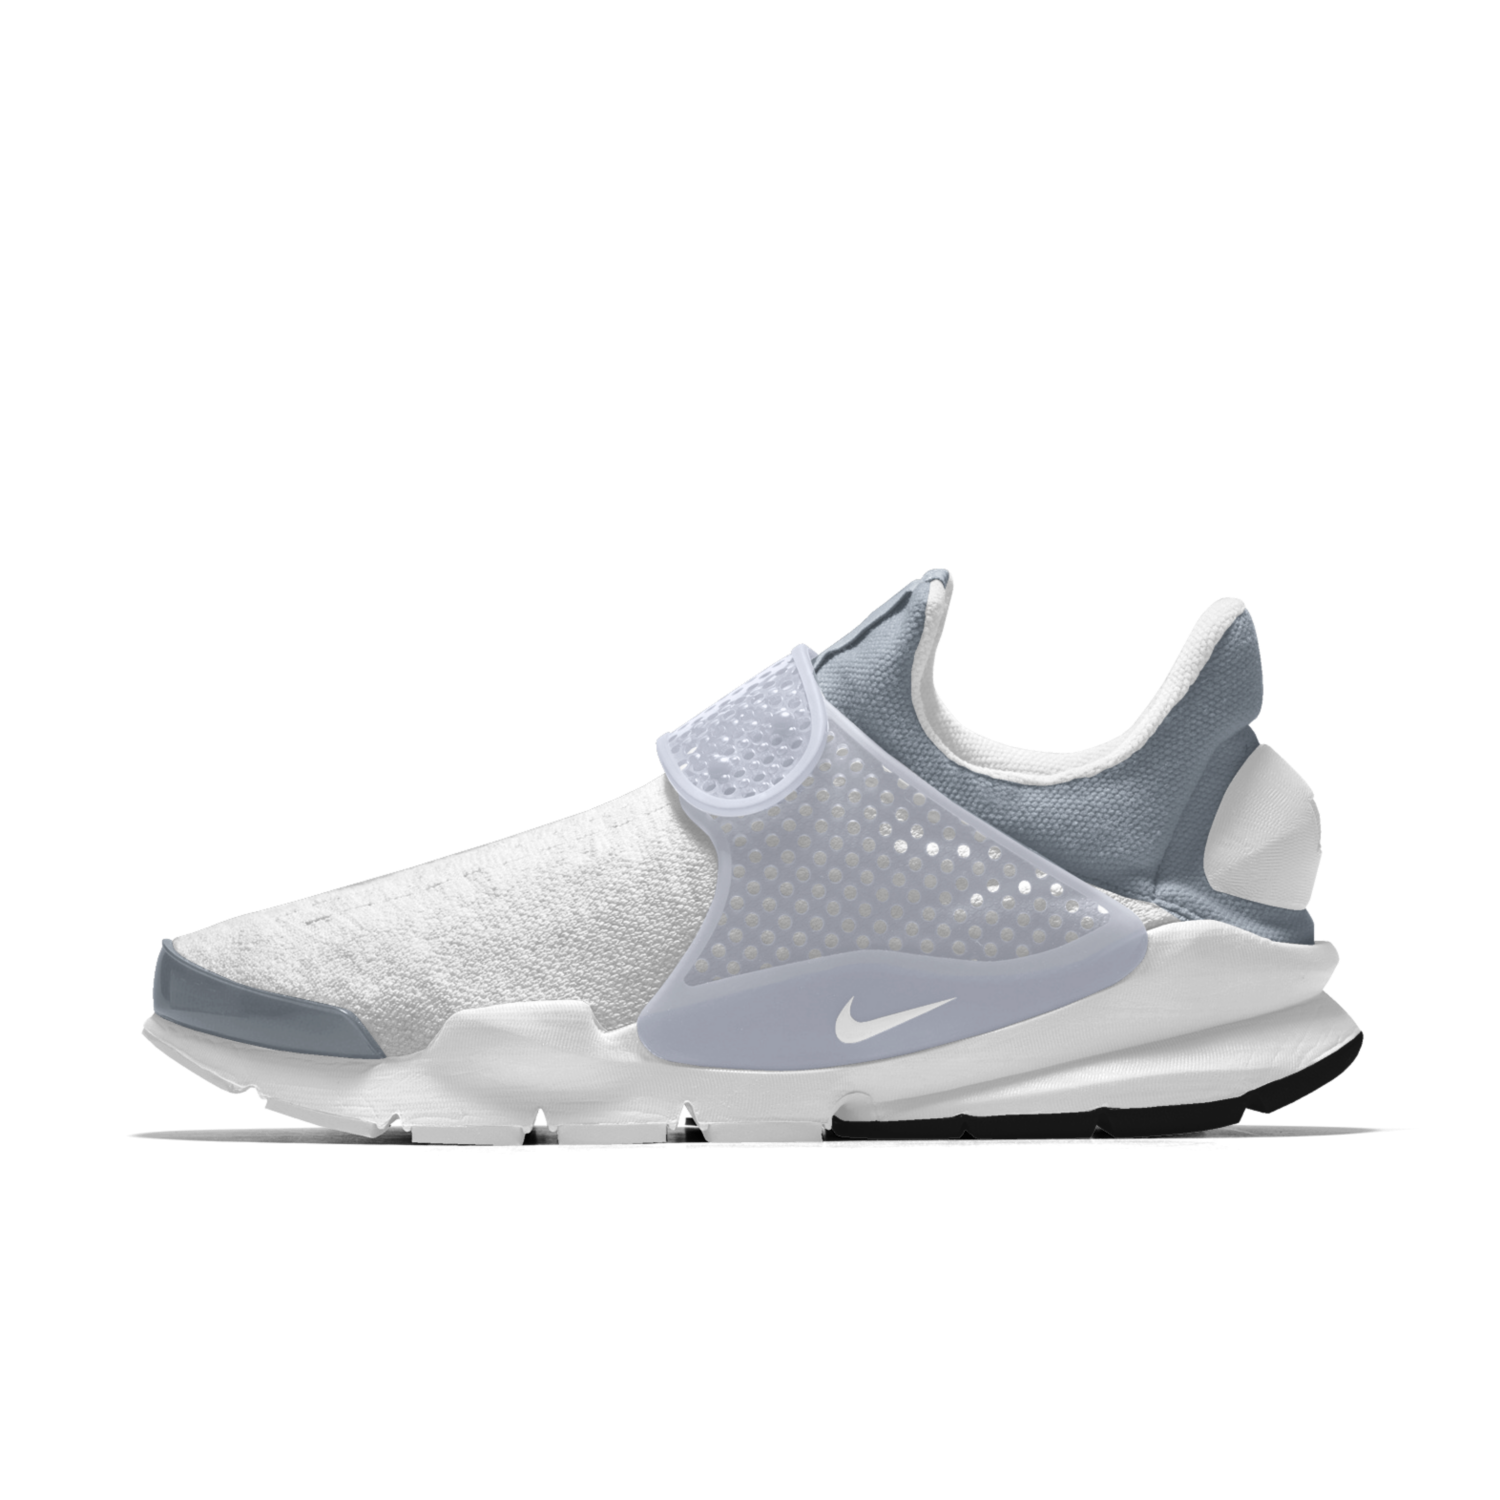 Nike Sock Dart shoes